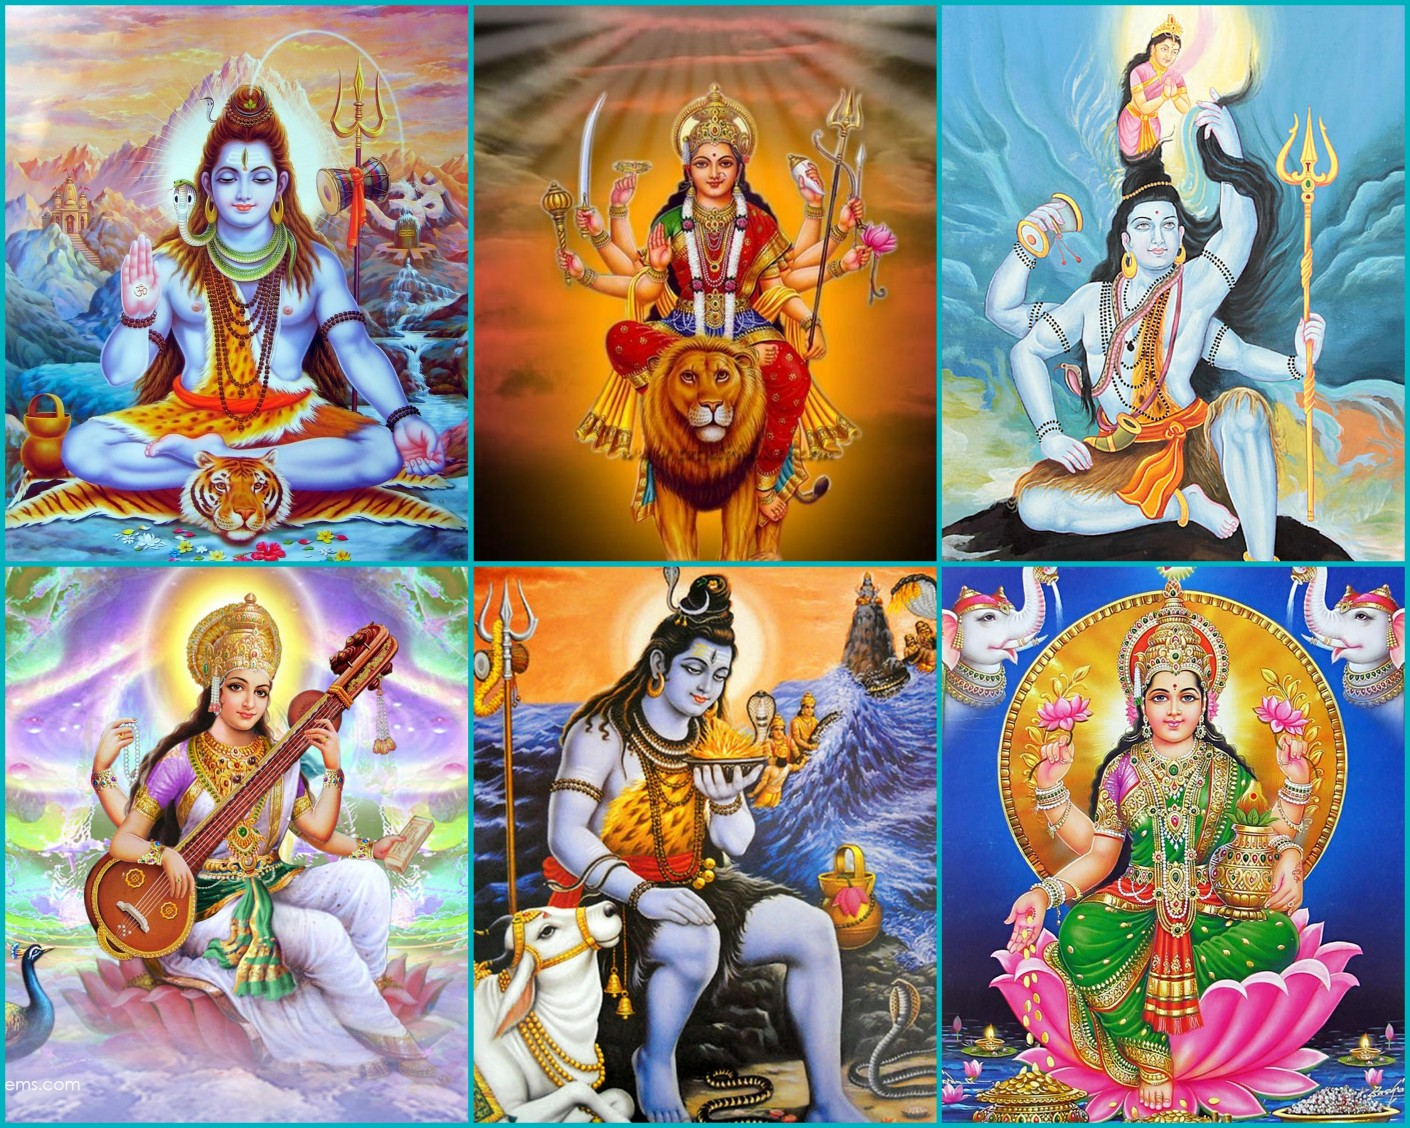 the lord shiva hindu traditions essay Ganesh chaturthi is hindu festival which is celebrated to worship lord ganesha with great enthusiasm lord ganesh who is known as the vighnaharta, the remover of obstacles and is worshipped at the beginning of every auspicious function, competition, and any work to make it successful.